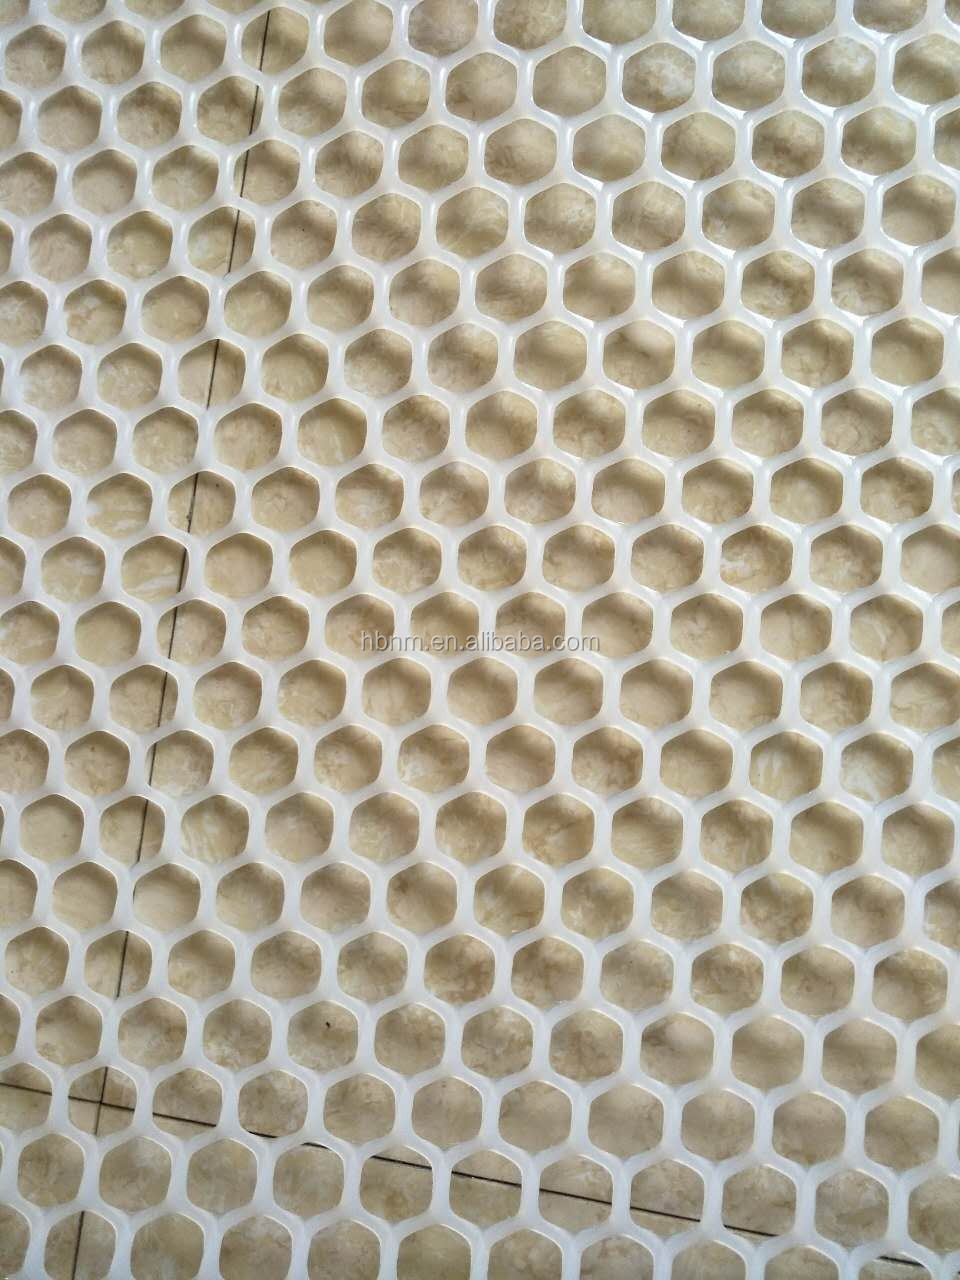 HB serious plastic chicken net floor with high quality and best price